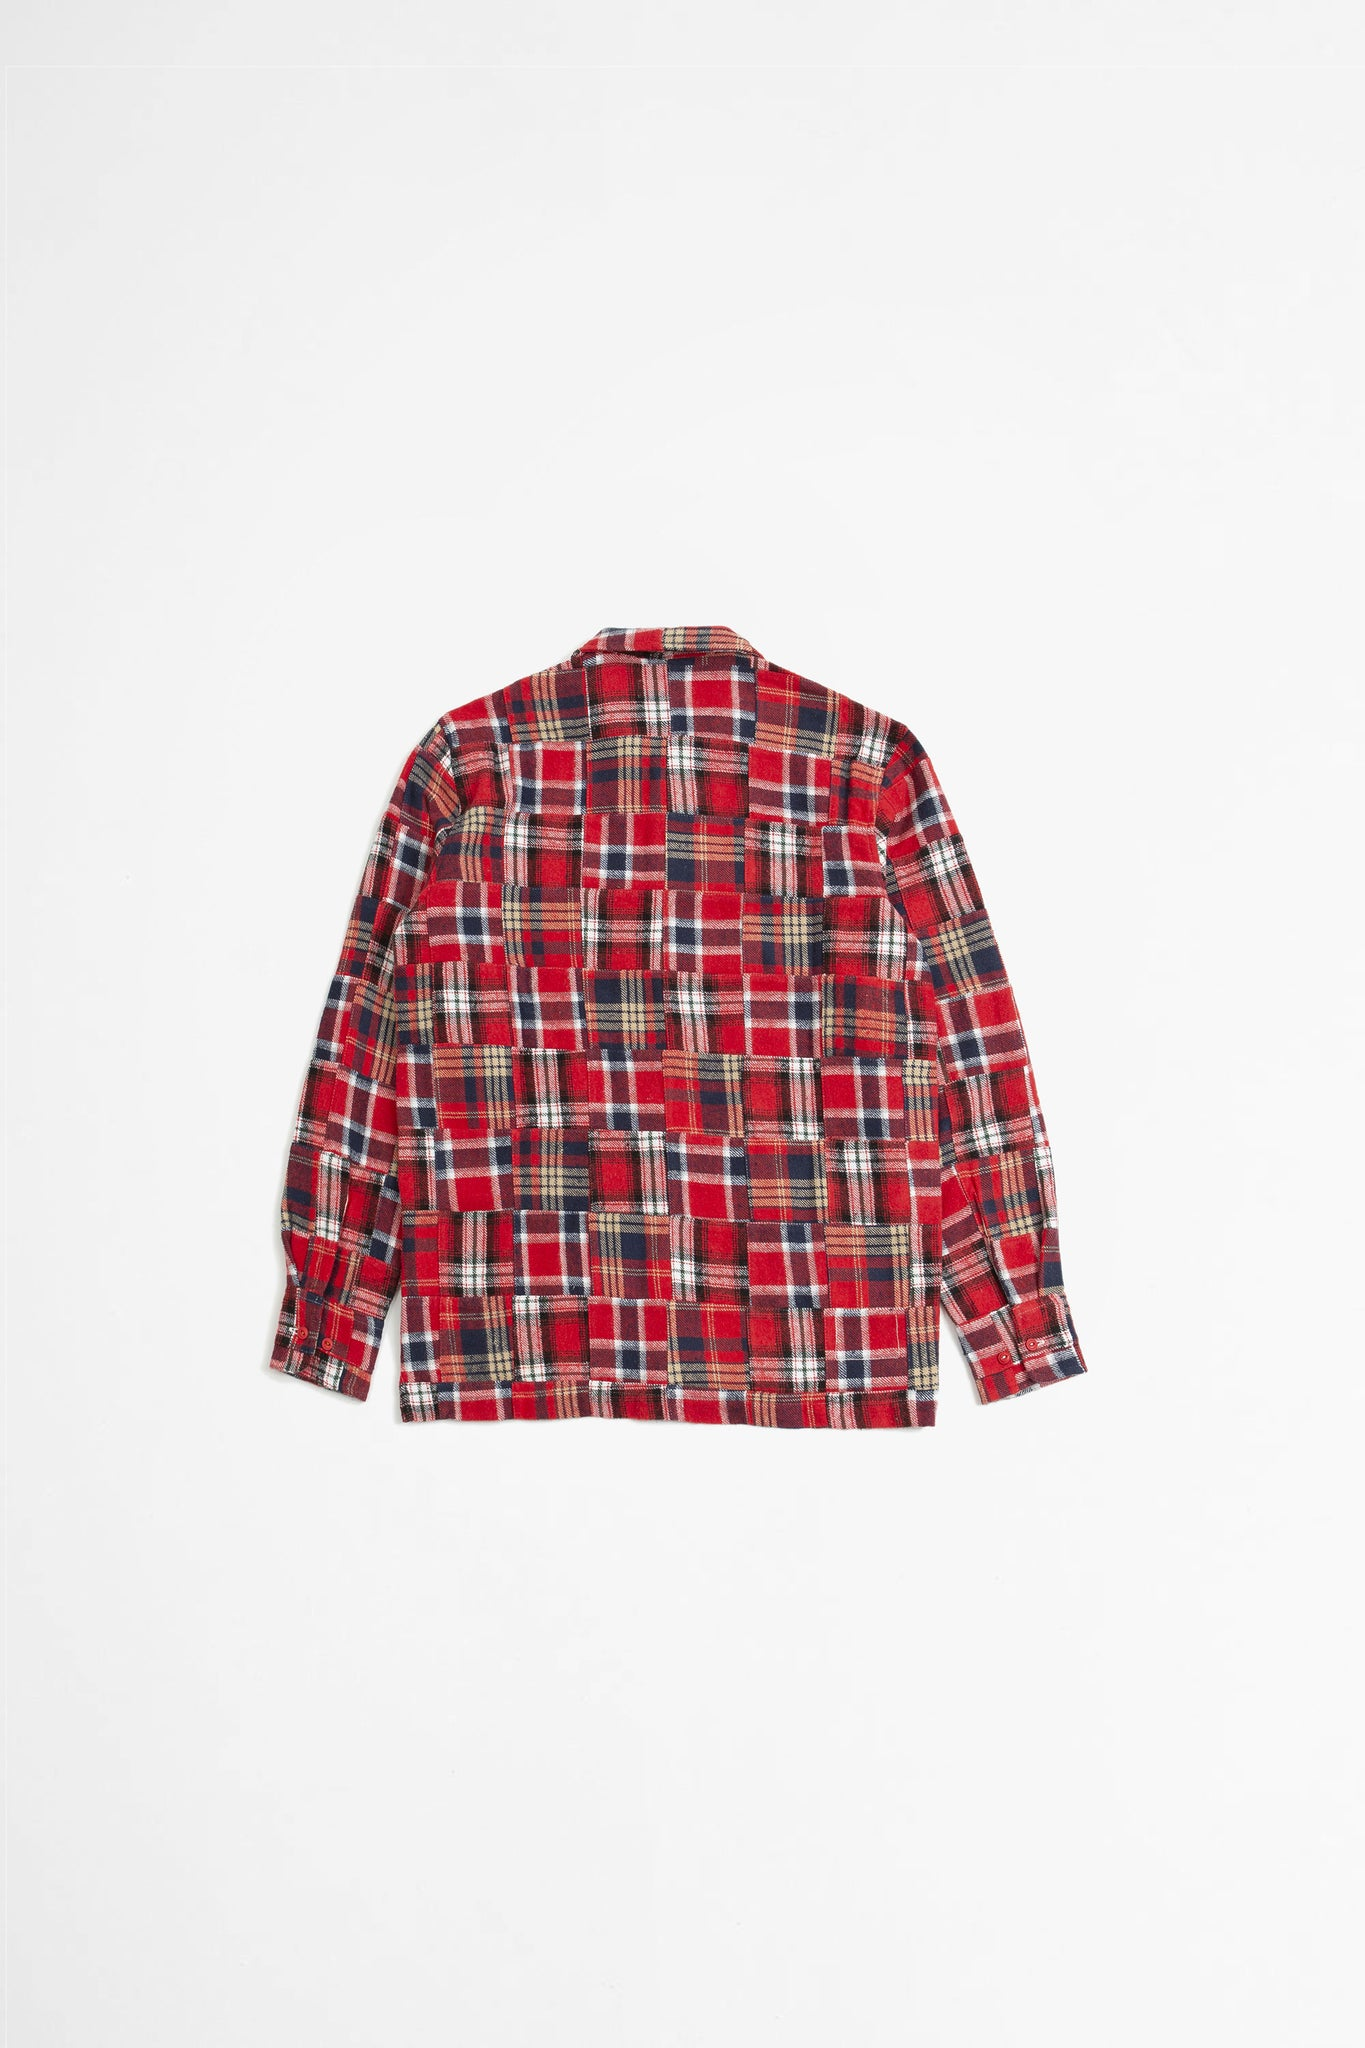 Garage II shirt in red brushed patchwork